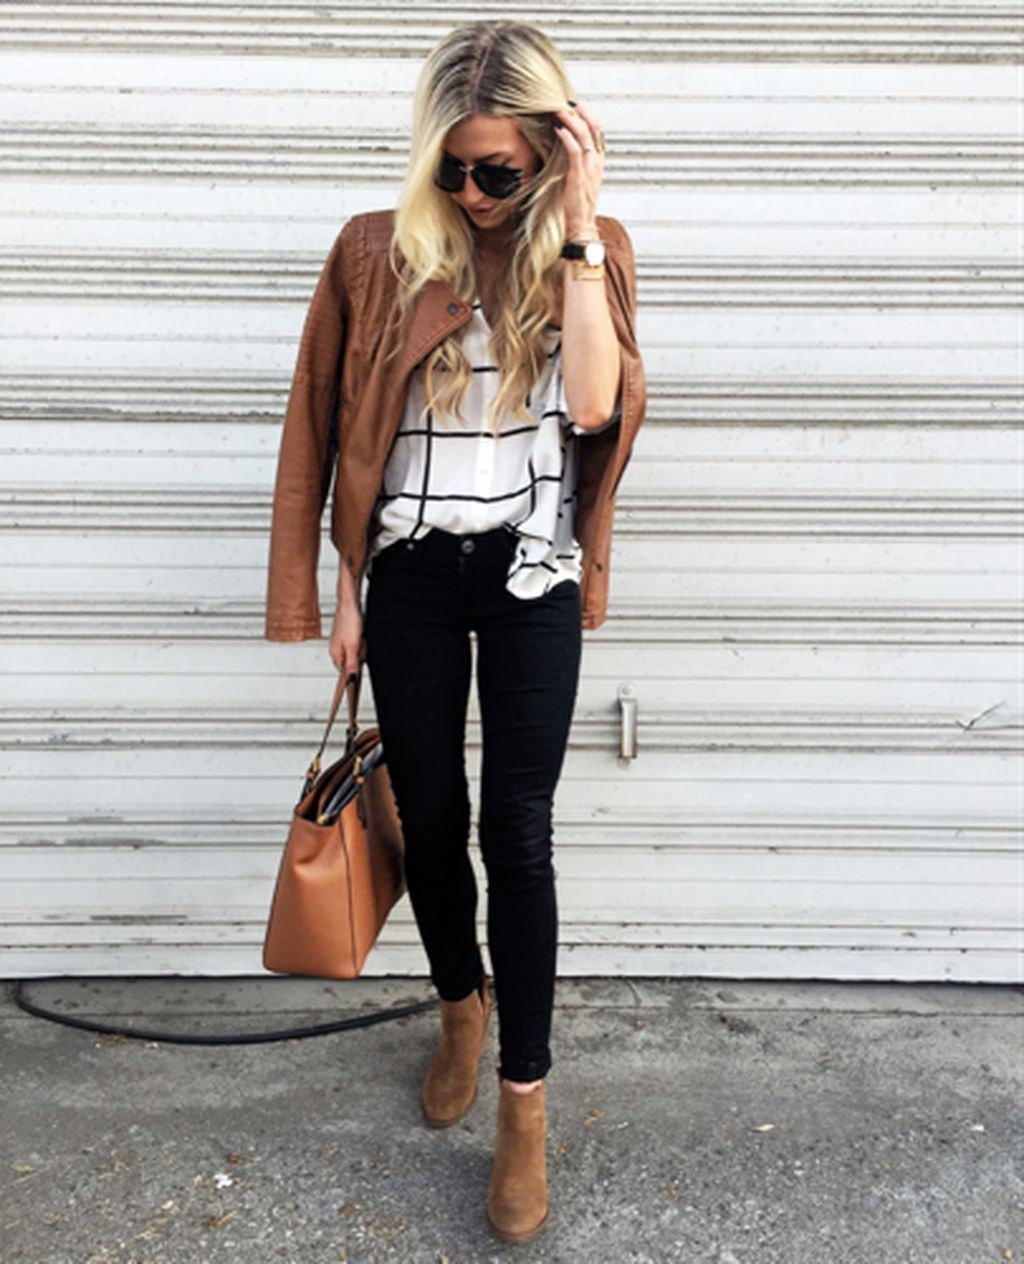 39 Stylish Brown Leather Jacket Outfits Ideas To Makes You Look Fashionable – TILEPENDANT